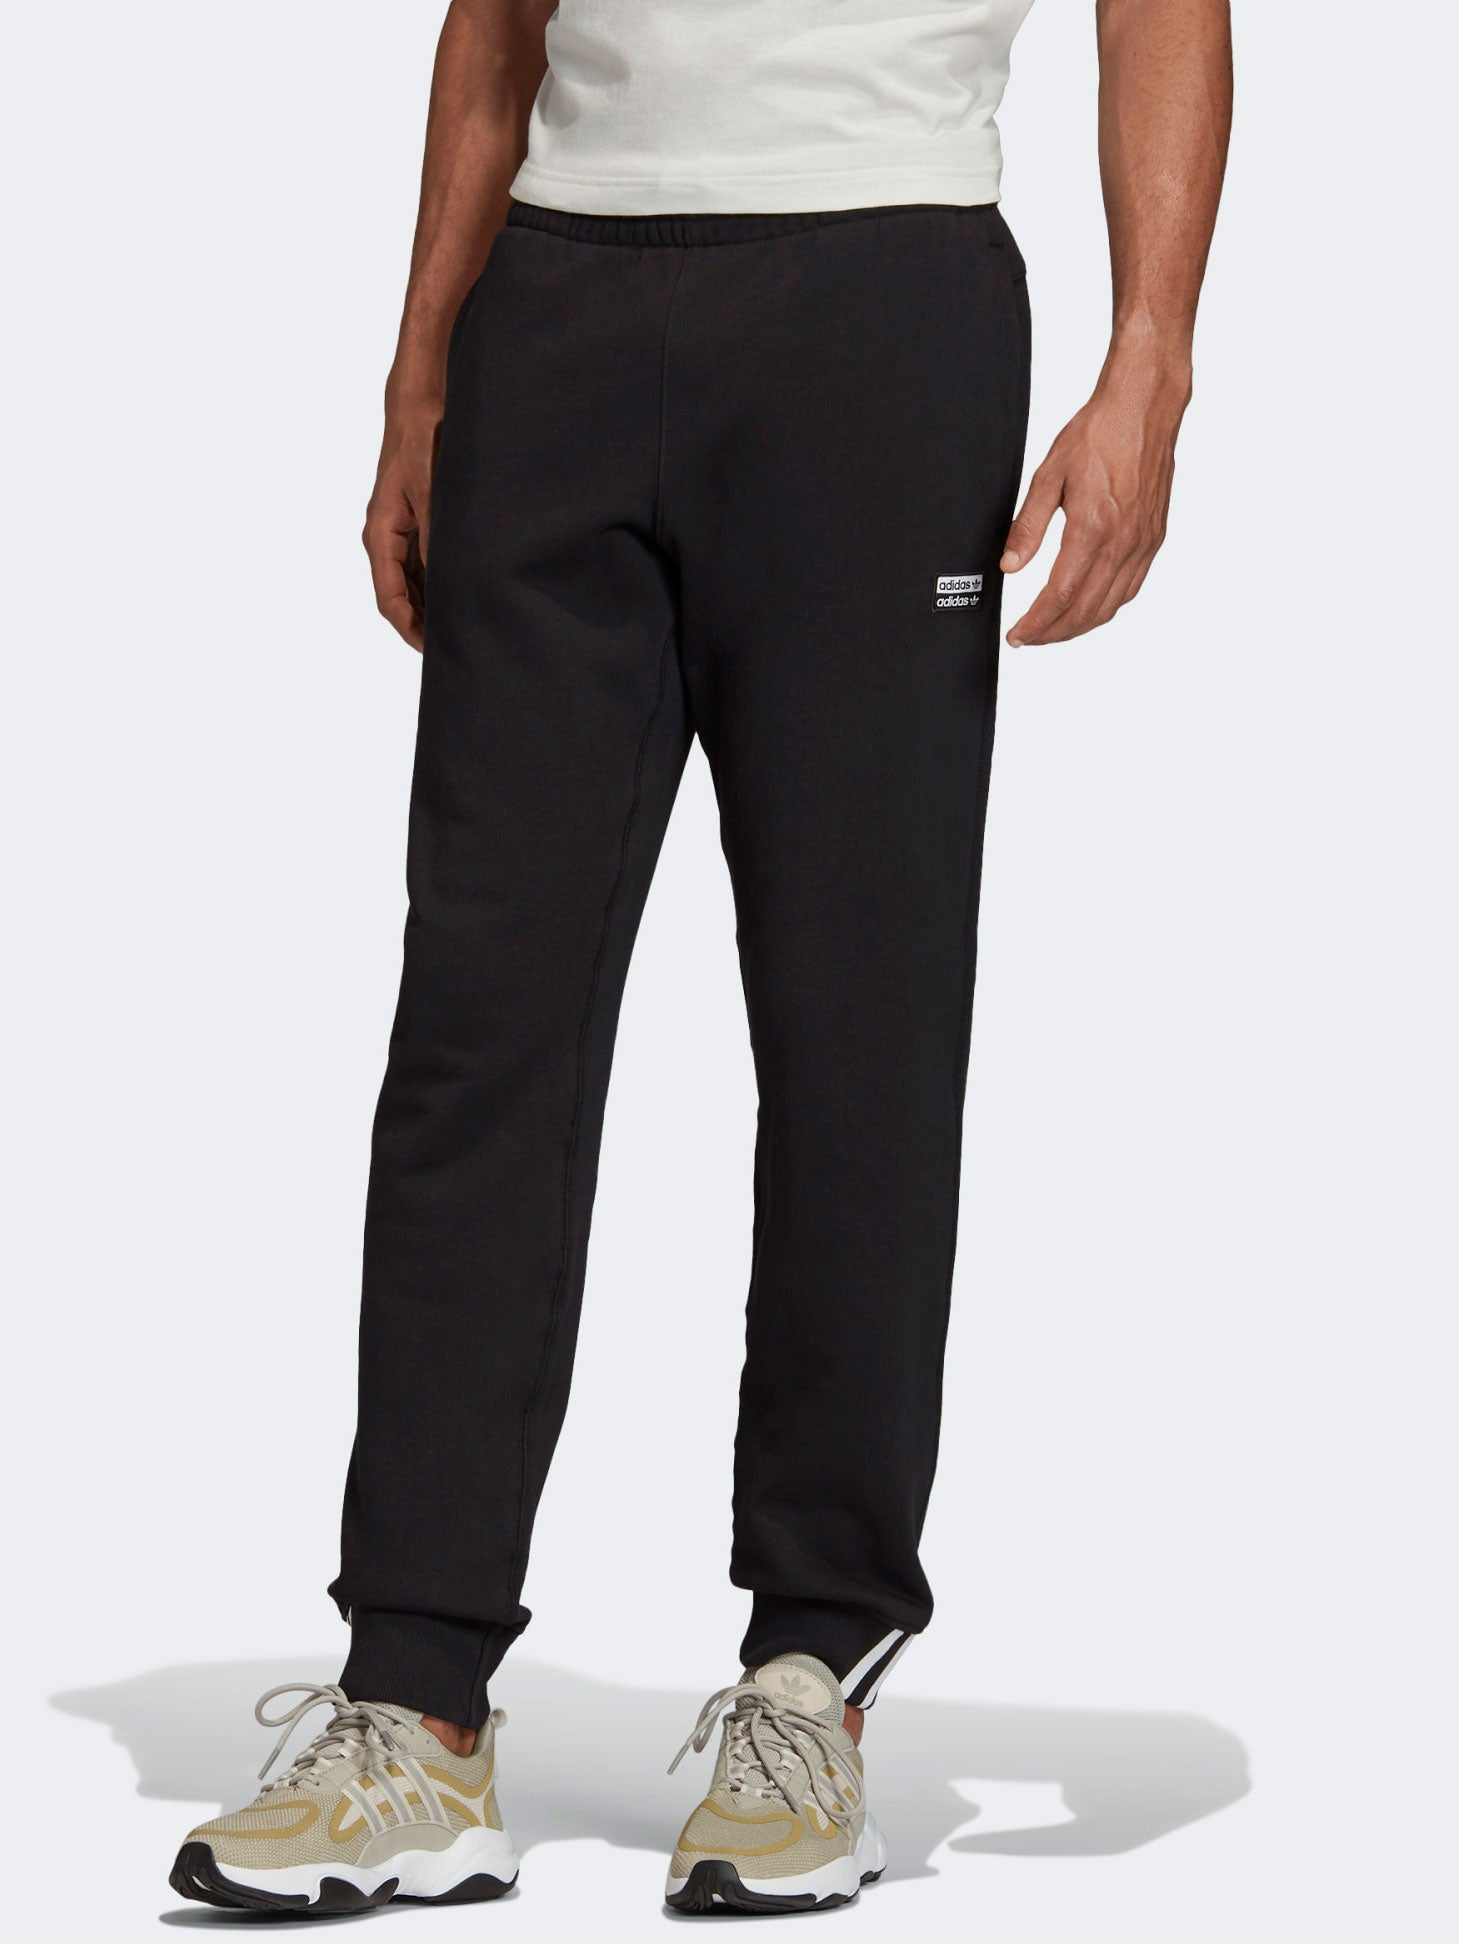 R.Y.V Sweatpants